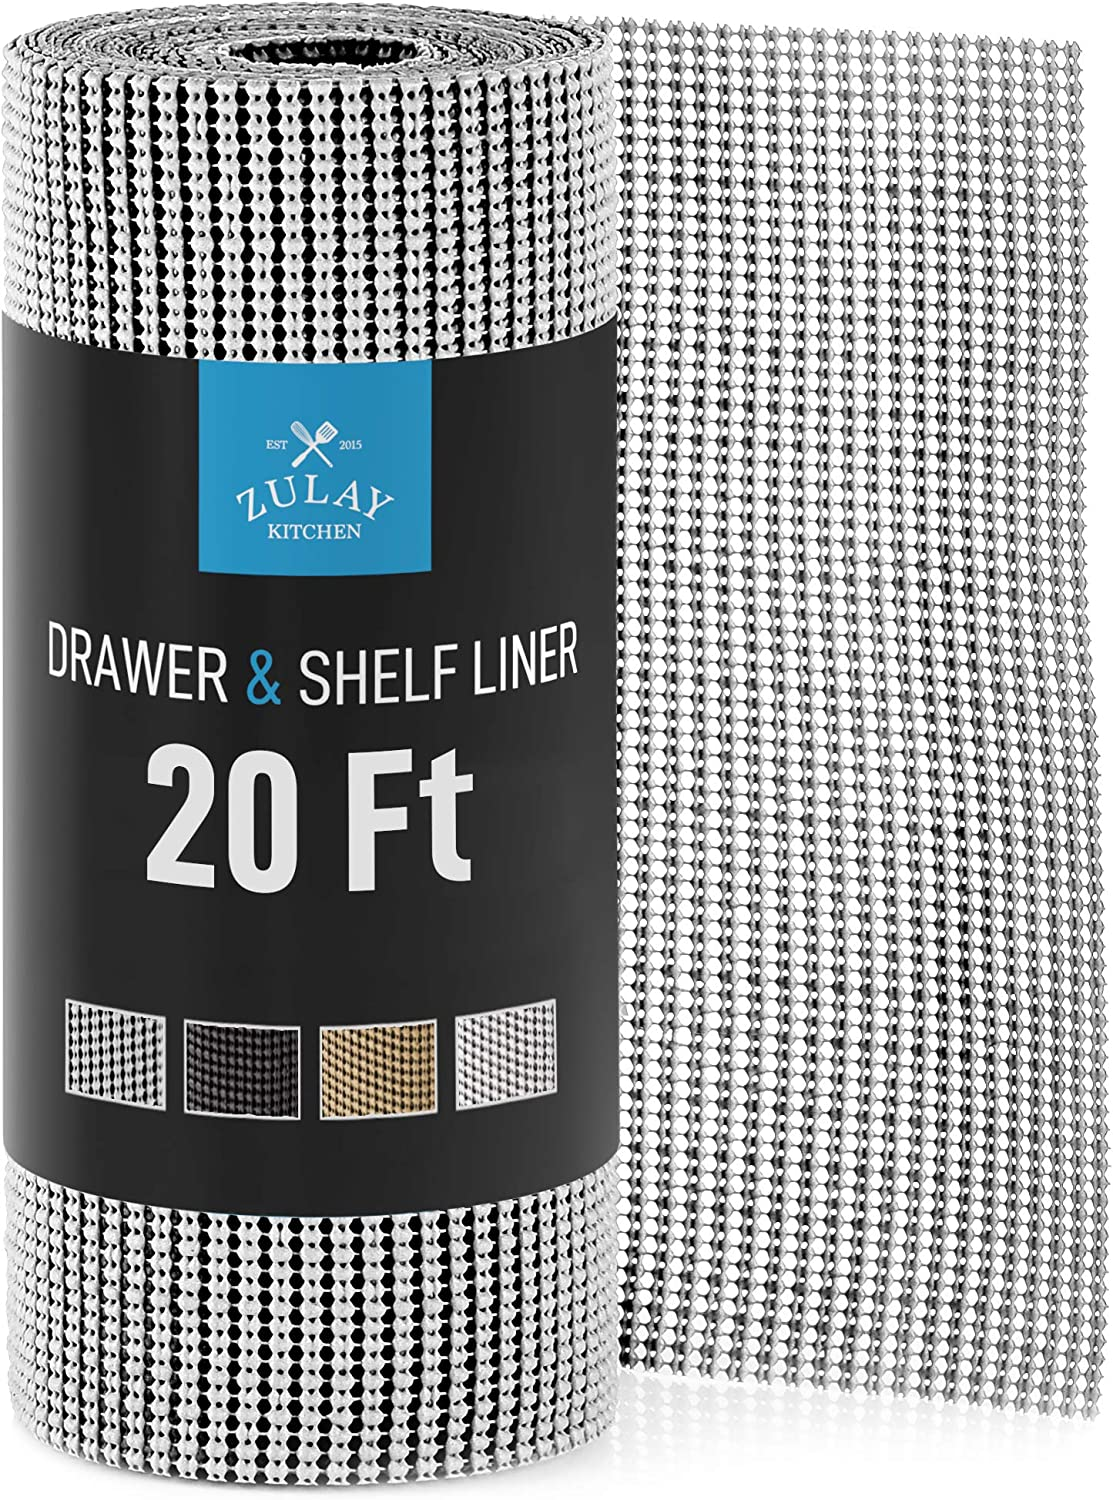 Zulay (12 Inch x 20 FT) Drawer & Shelf Liner - Non Adhesive Drawer Liner - Protective Shelf Liner Non Slip for Cabinets, Storage, Kitchen, and Tables (Light Gray)